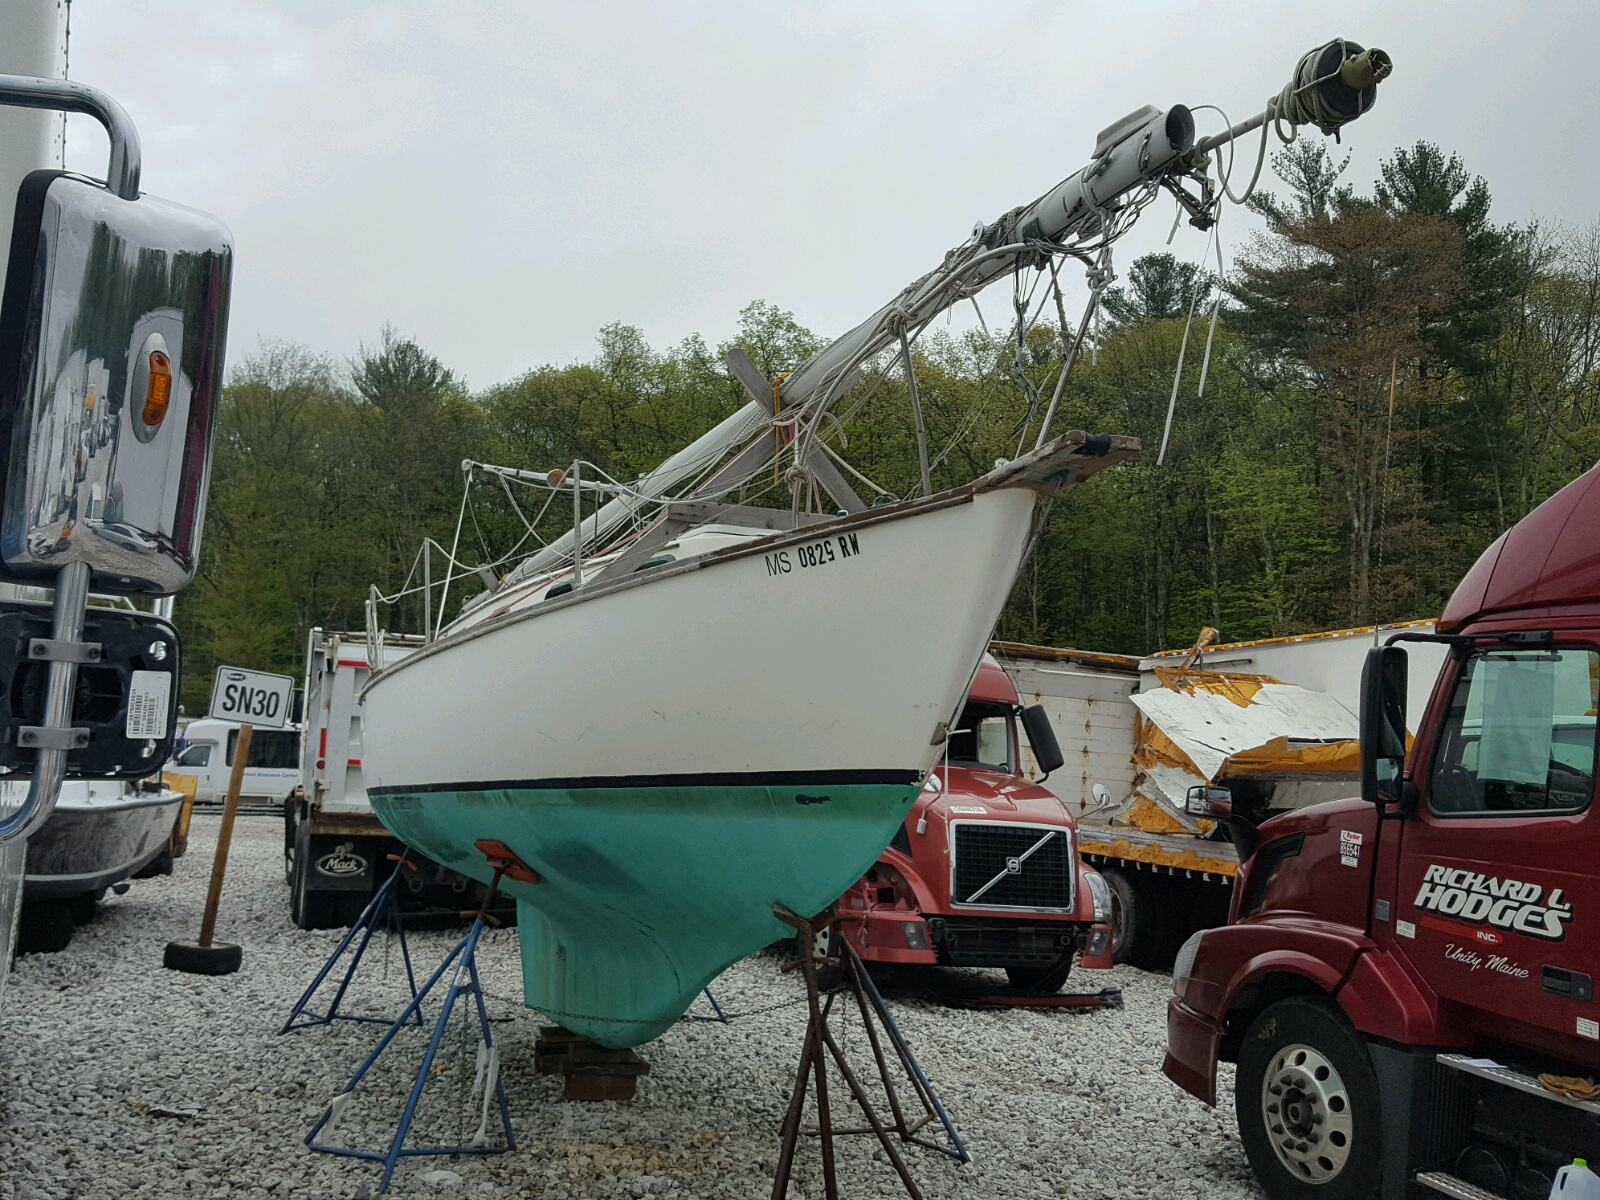 Salvage 1978 Capd BOAT for sale